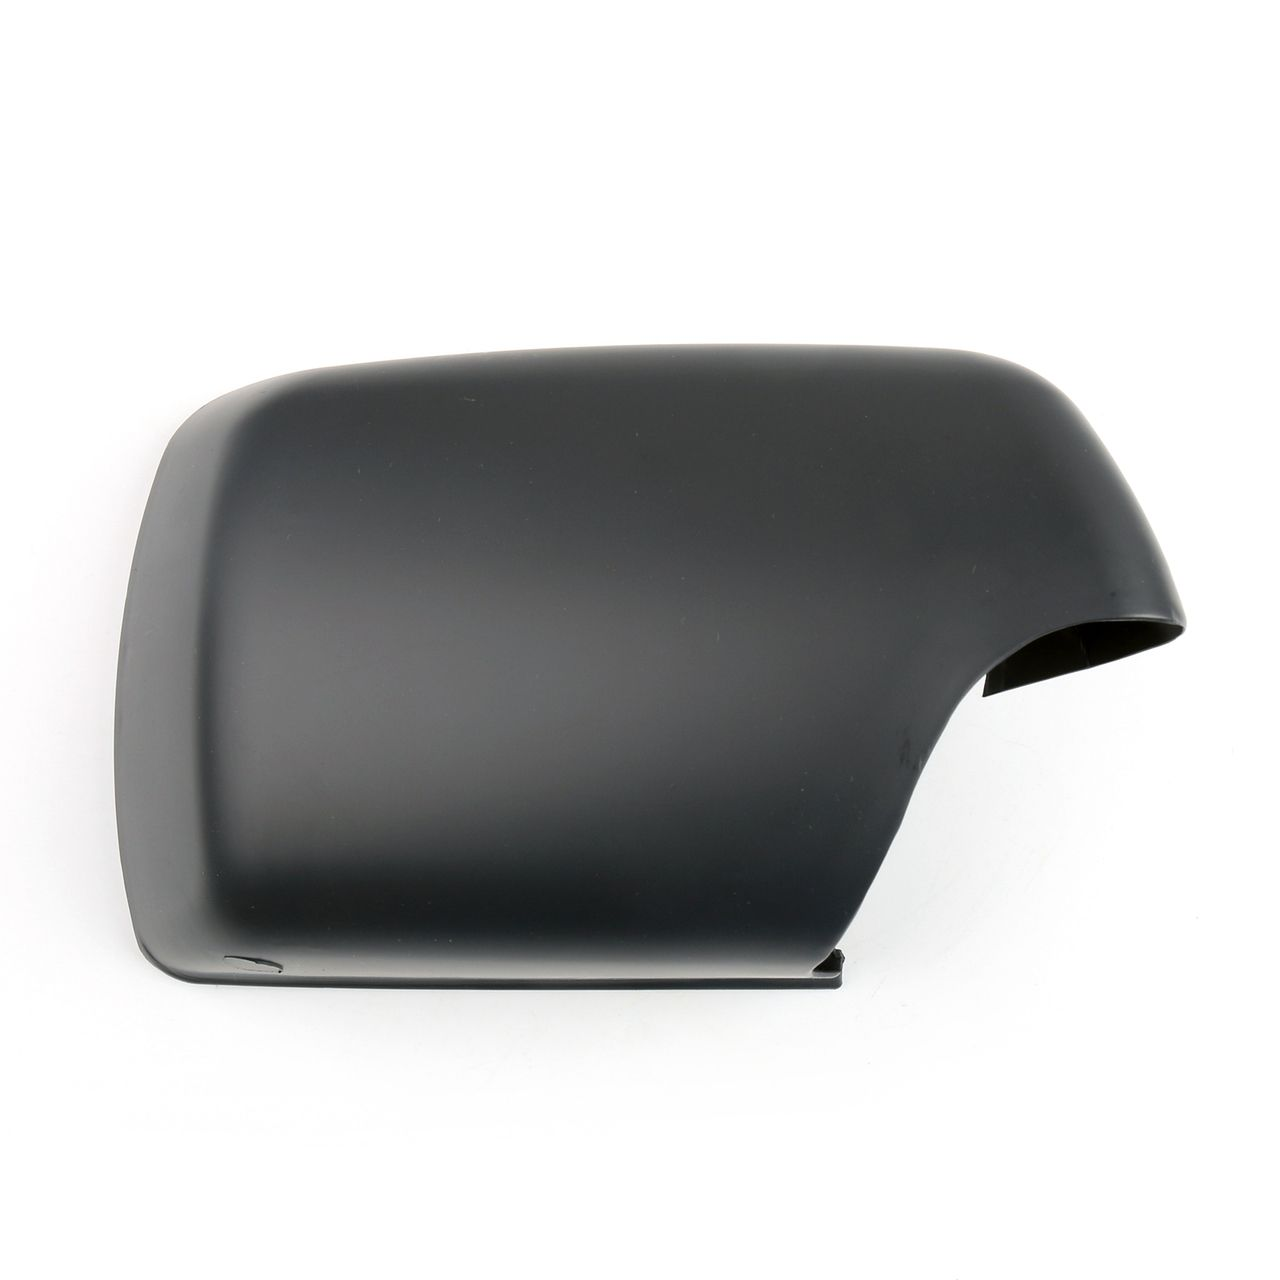 Door Mirror Cover Cap Right Bmw X5 E53 00 01 X5 E53 04 06 X5 3 0i 4 4i E53 02 03 Electronic Items Accessories